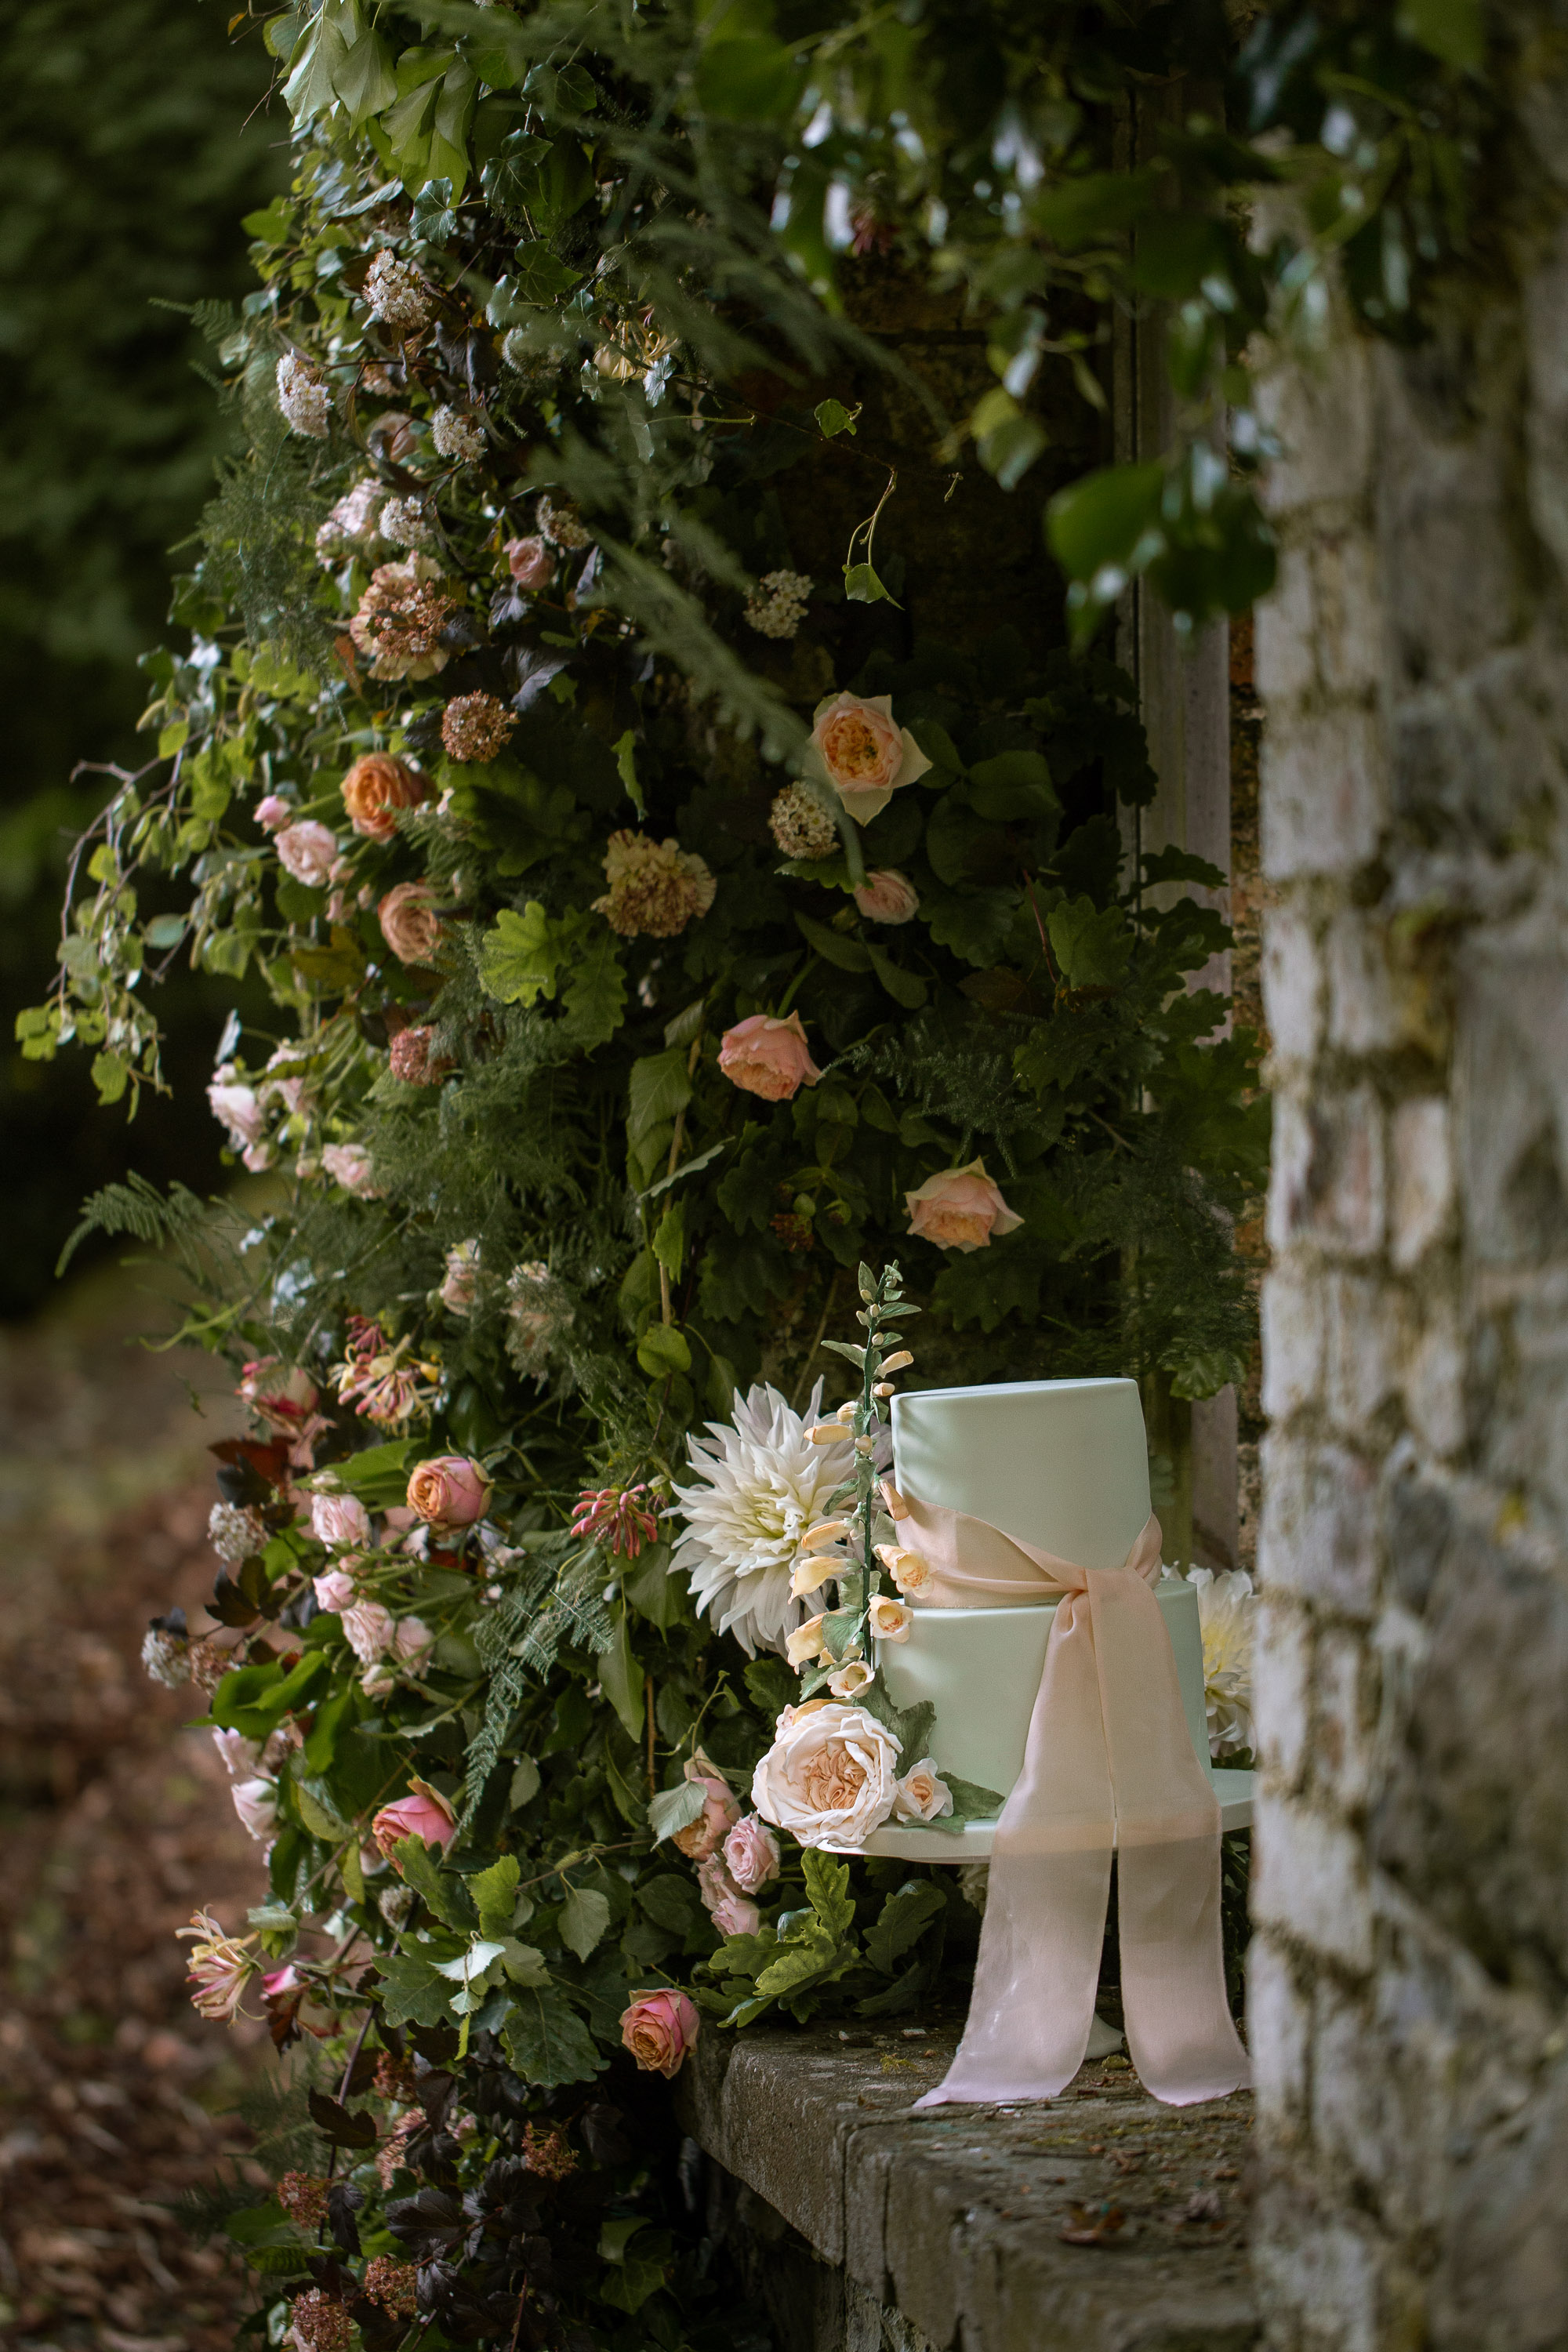 Victoriana-Flora-wedding flowers-northern ireland-styled-shoot-inspire-weddings-9.jpg